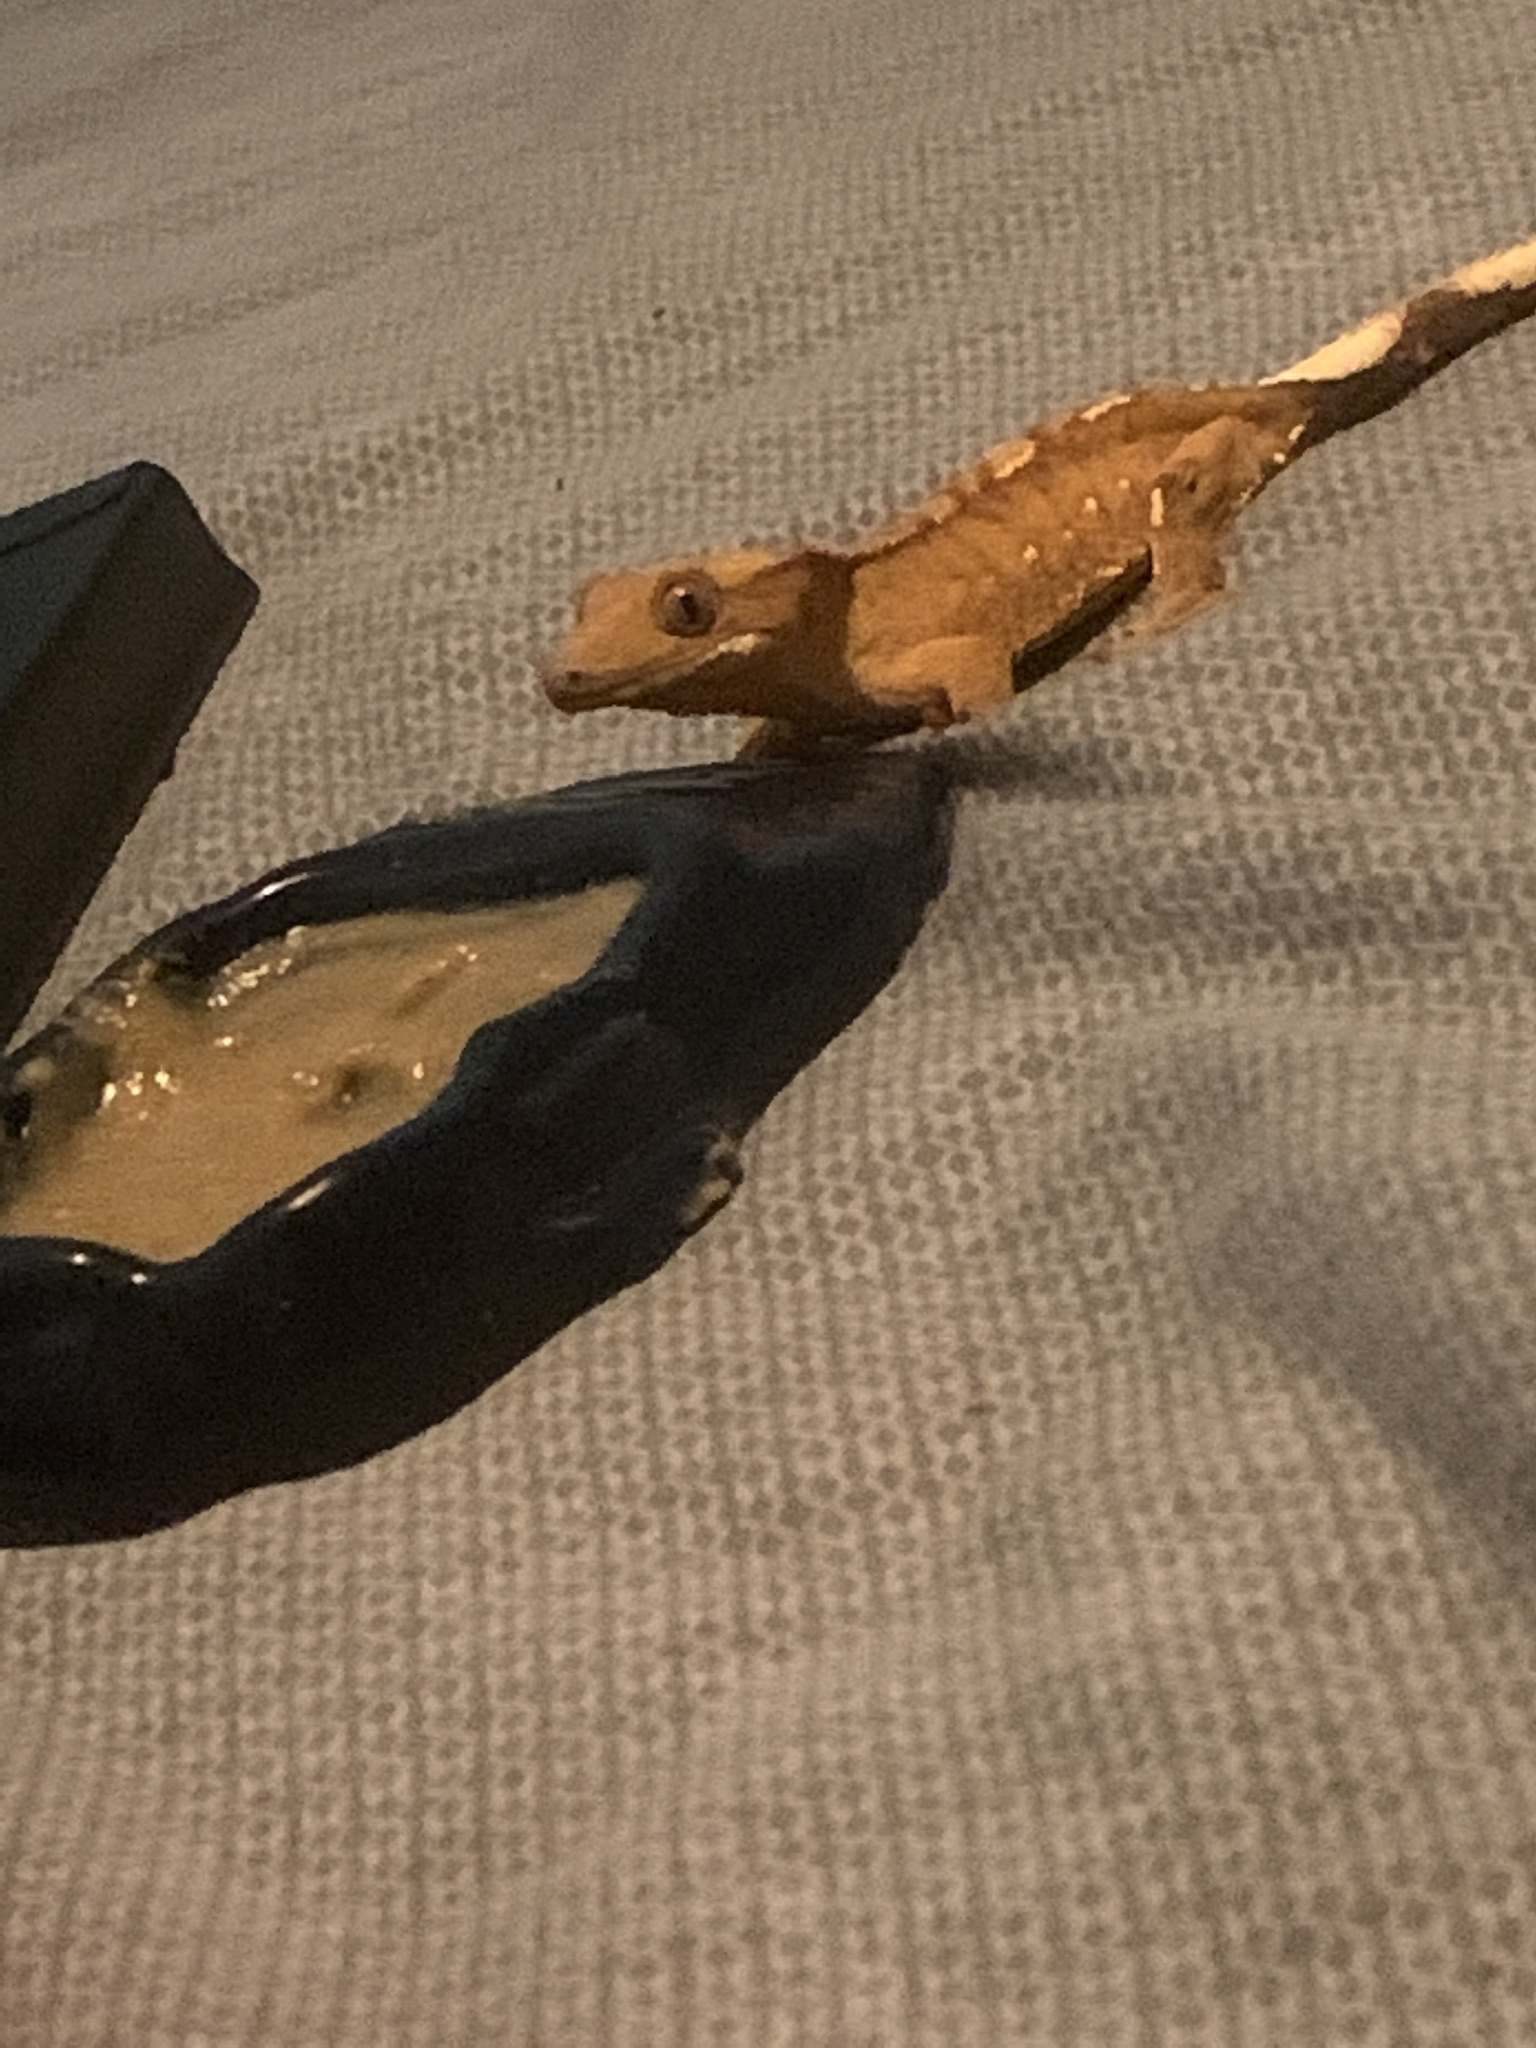 My crested gecko sandy !!!!❤️❤️❤️